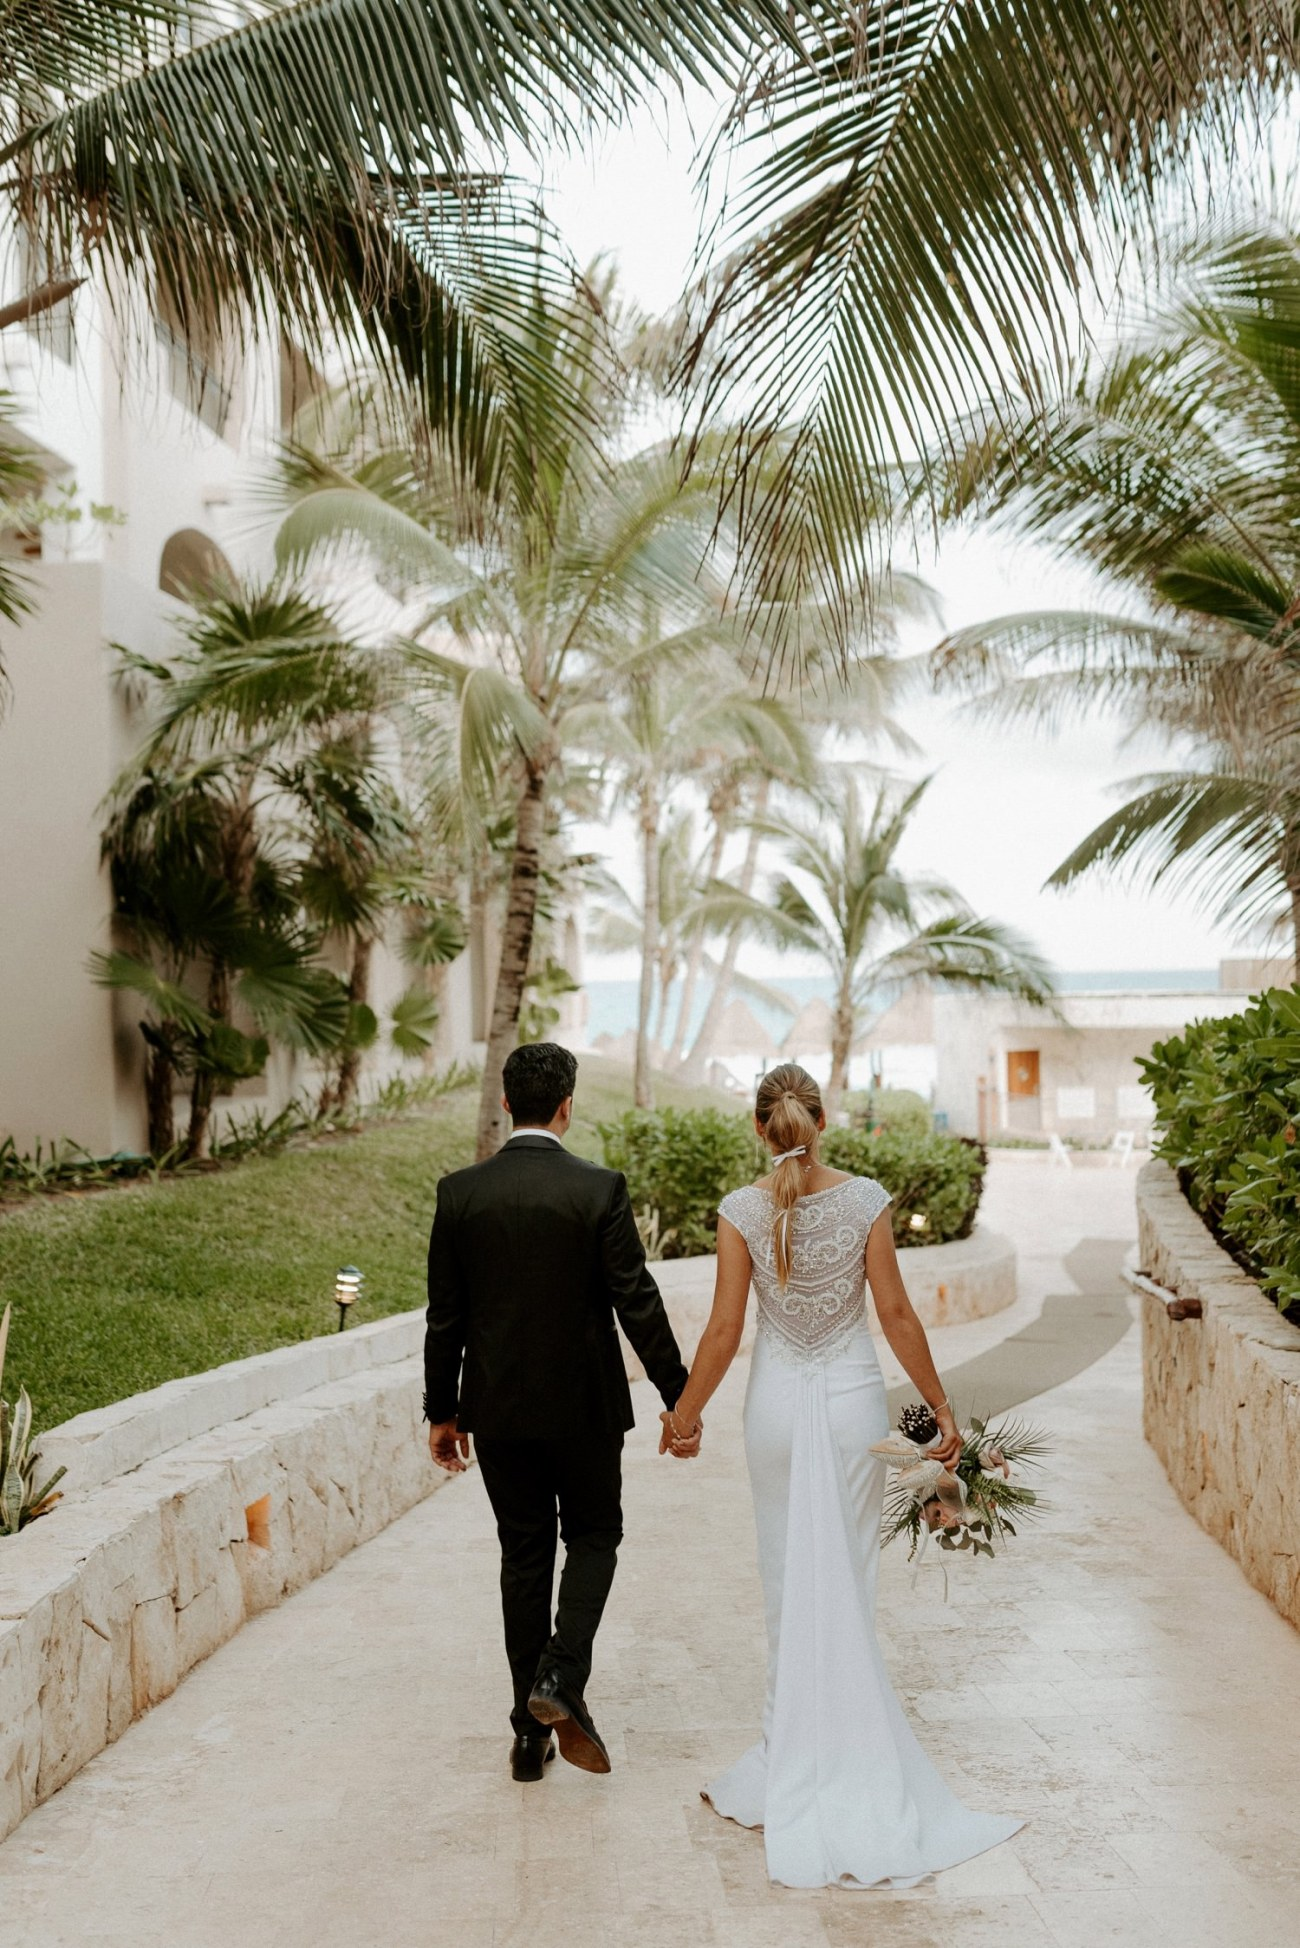 Cancun Destination Wedding Mexico Tulum Wedding Photographer Anais Possamai Photography 060